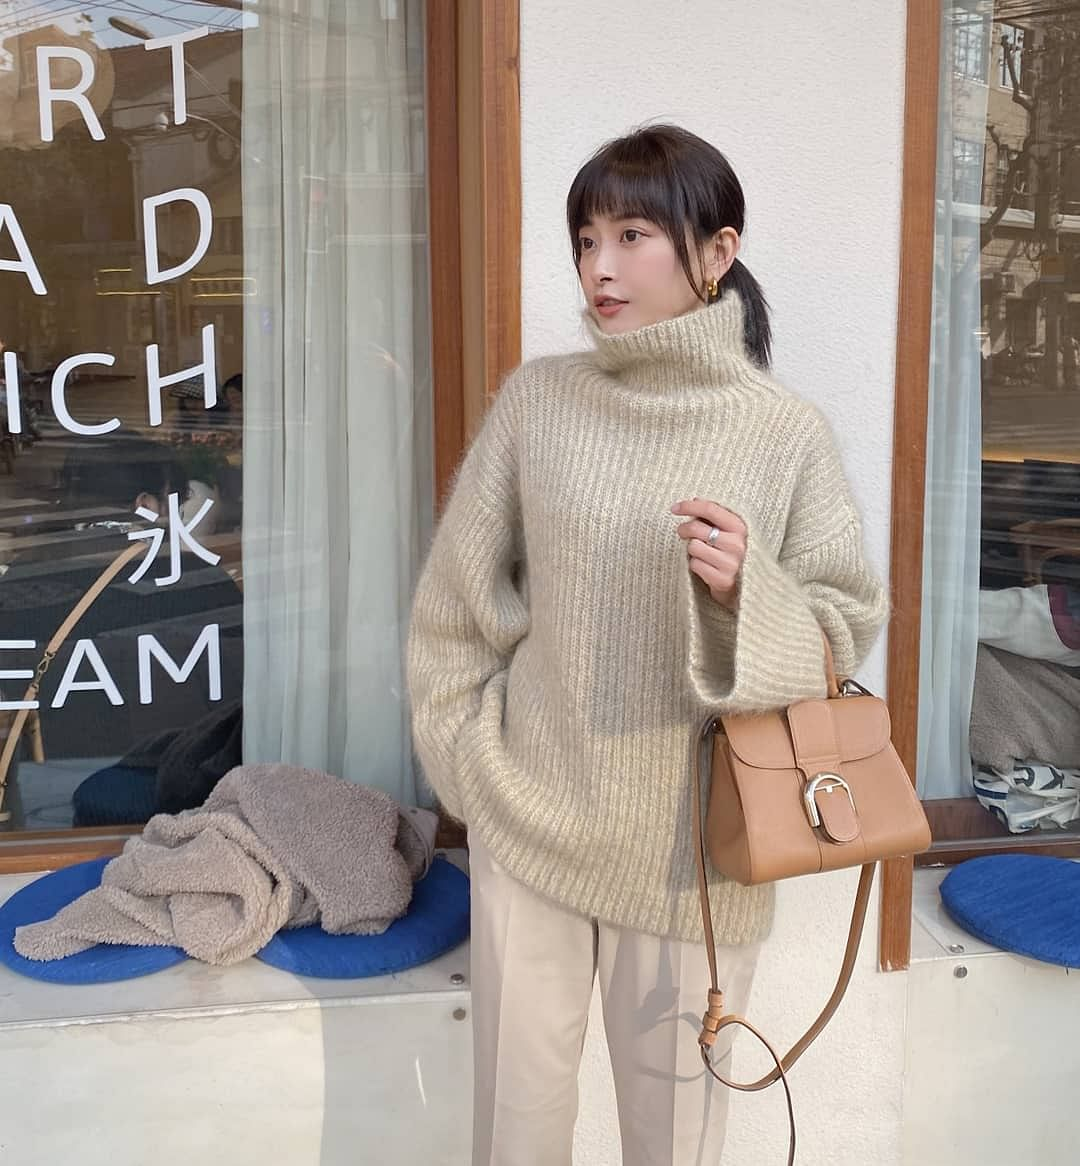 Turtlenecks can be worn single or with a coat or a jacket